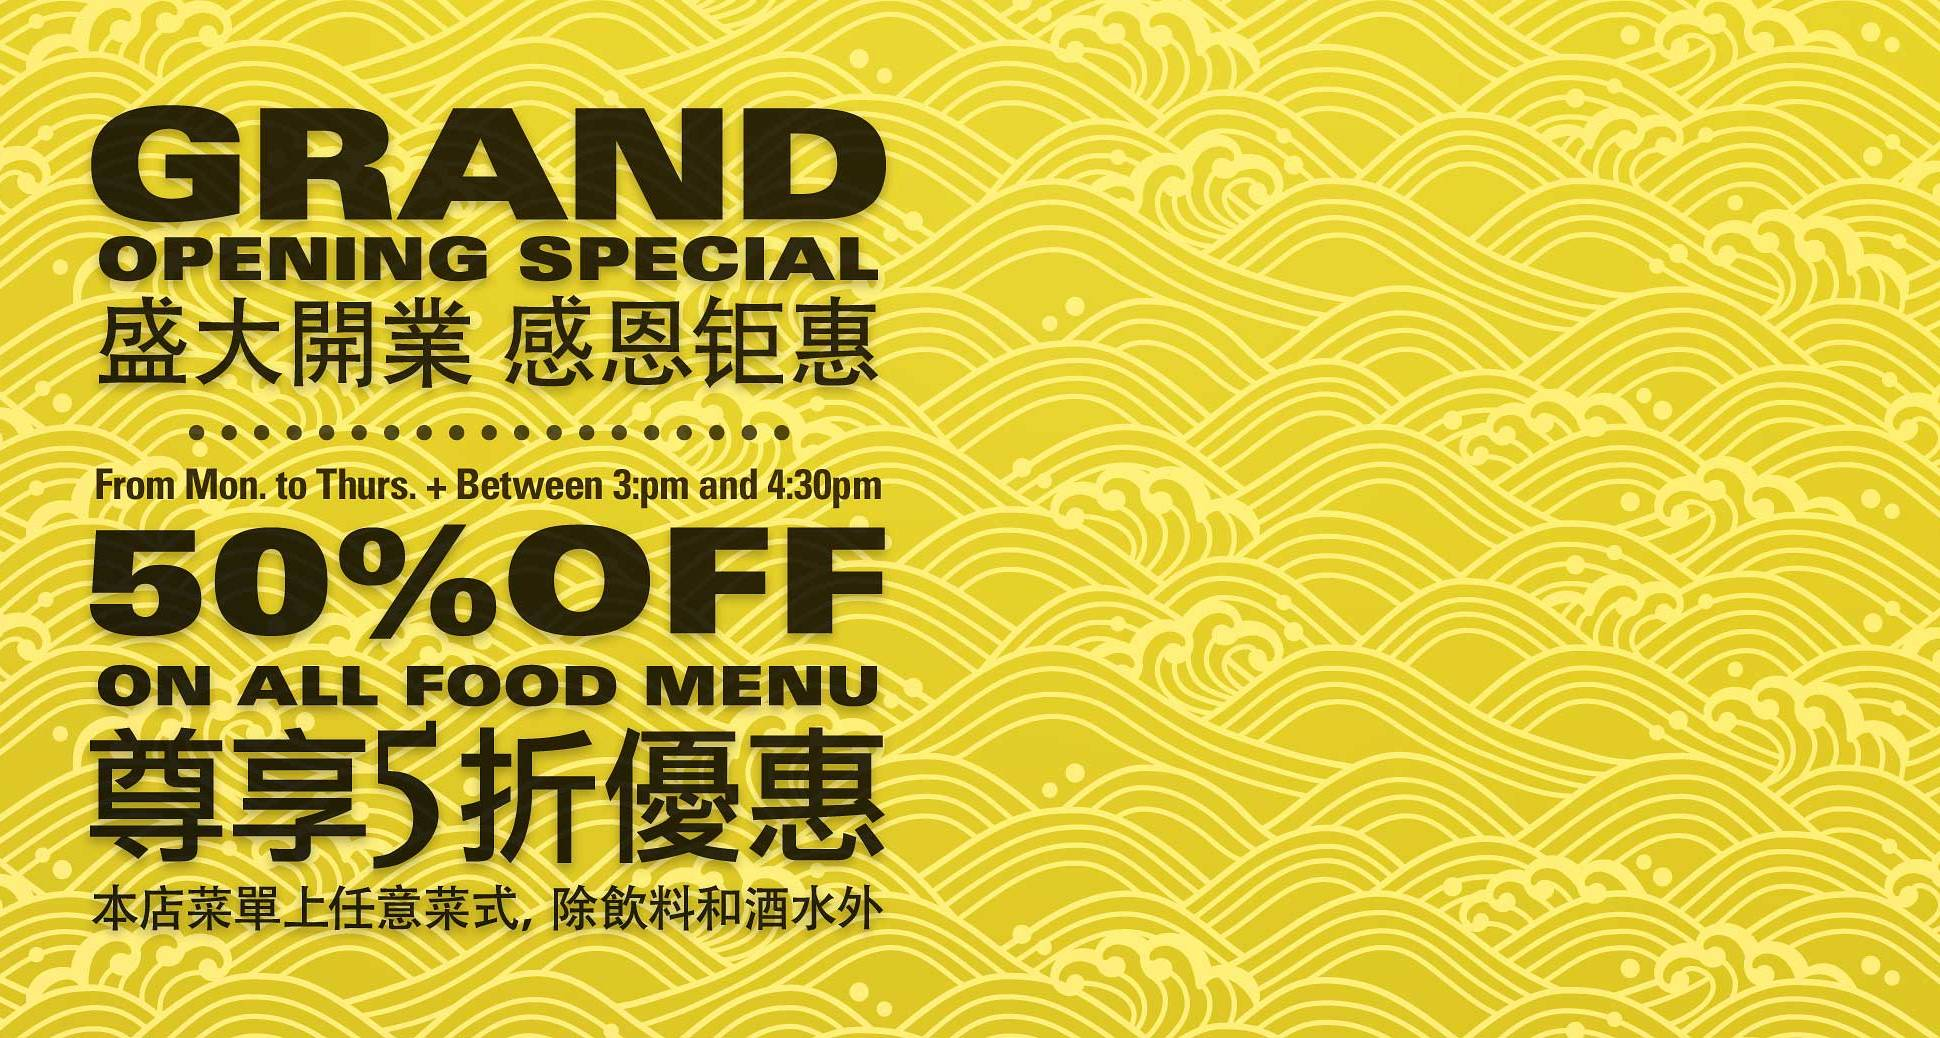 Grand Opening Special!